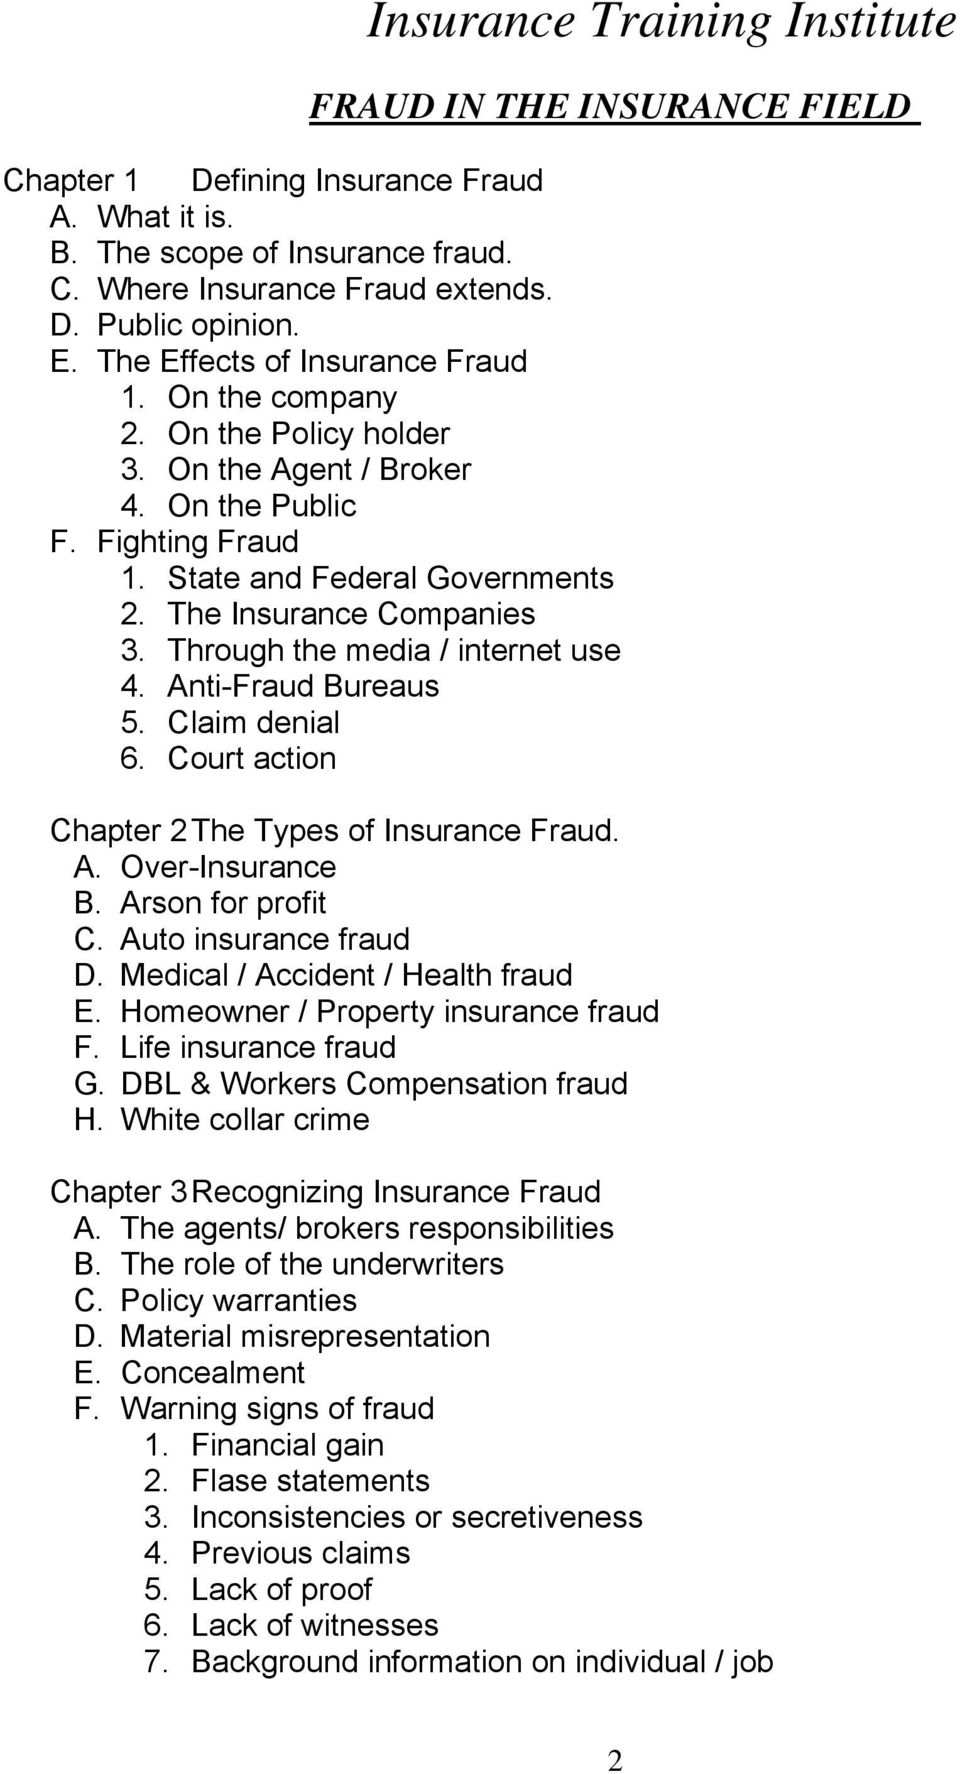 Through the media / internet use 4. Anti-Fraud Bureaus 5. Claim denial 6. Court action Chapter 2 The Types of Insurance Fraud. A. Over-Insurance B. Arson for profit C. Auto insurance fraud D.